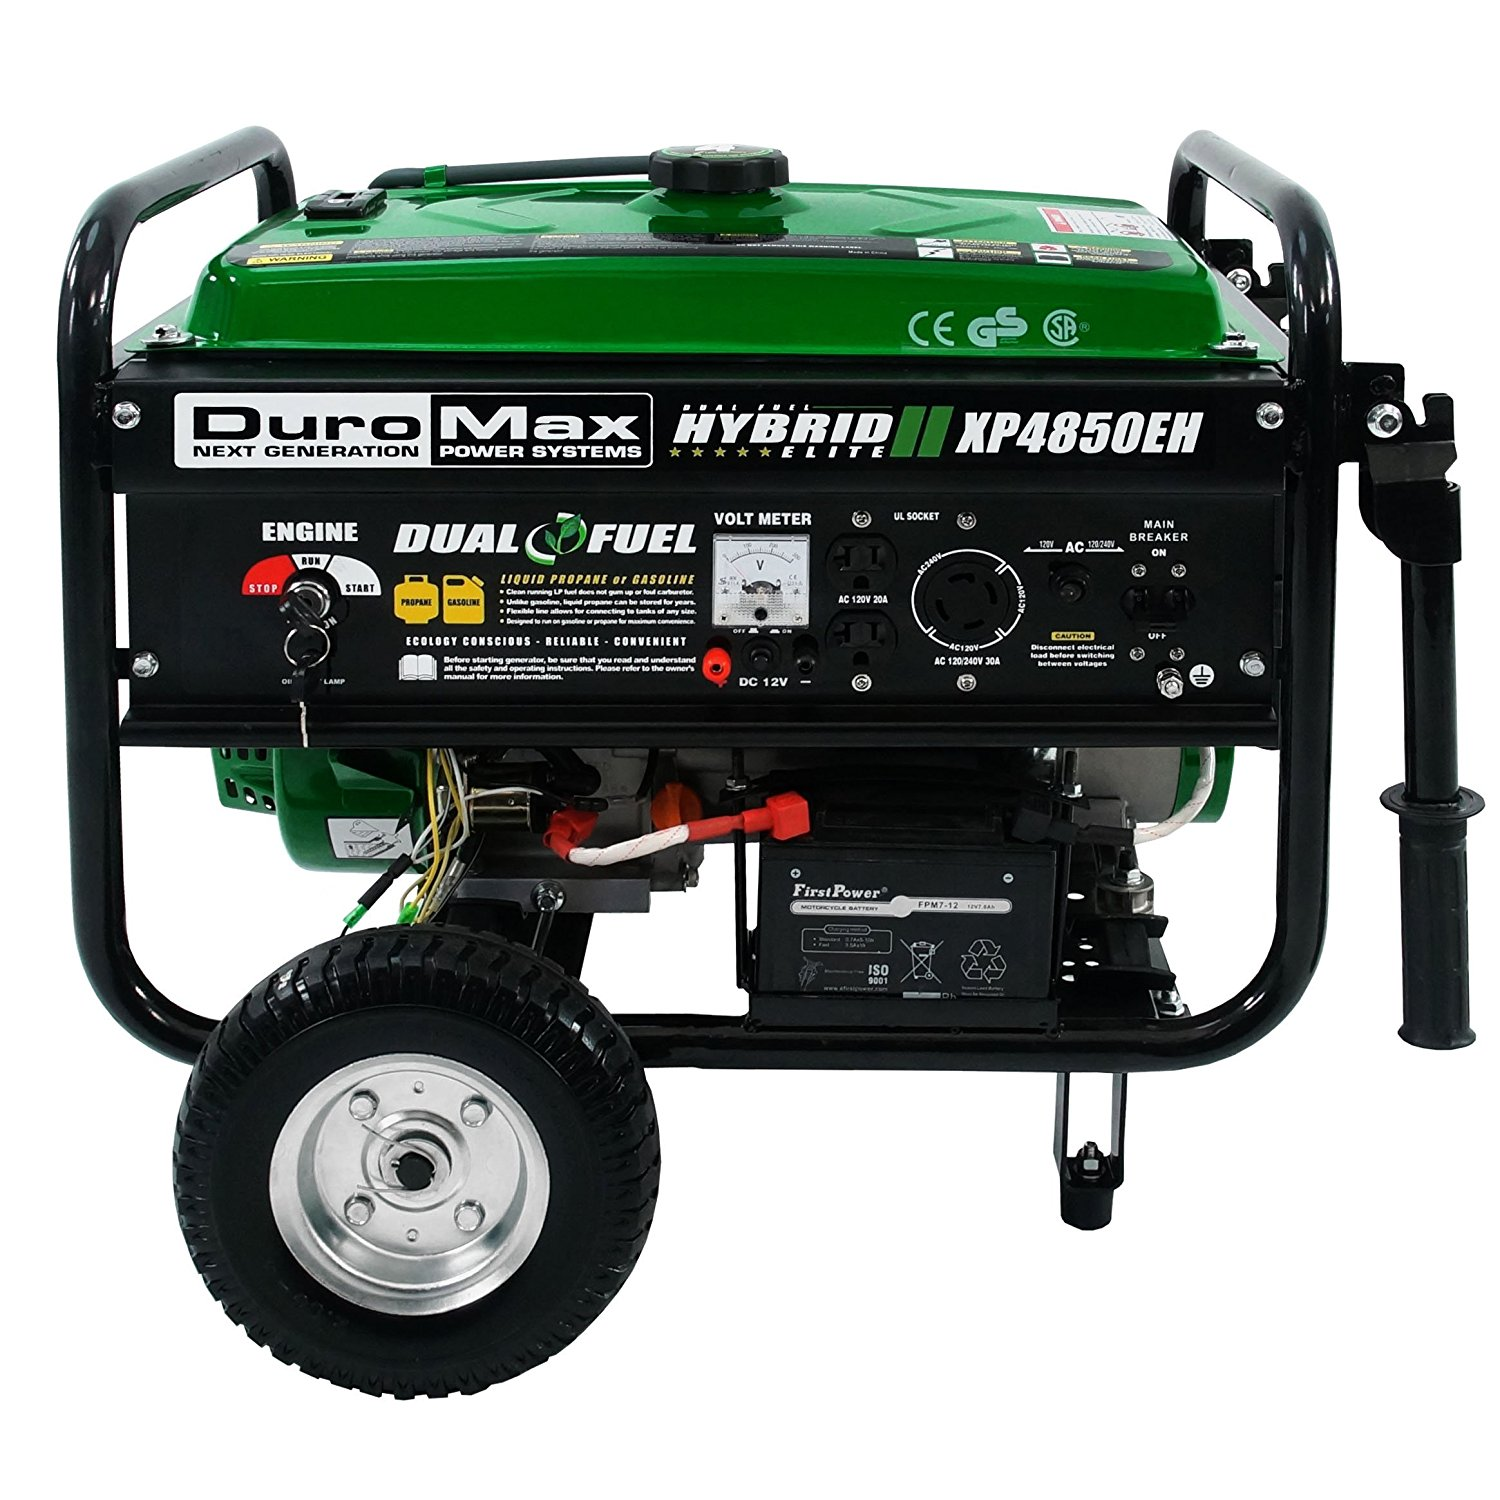 duromax xp4850eh running watts4850 starting watts dual fuel electric start portable generator